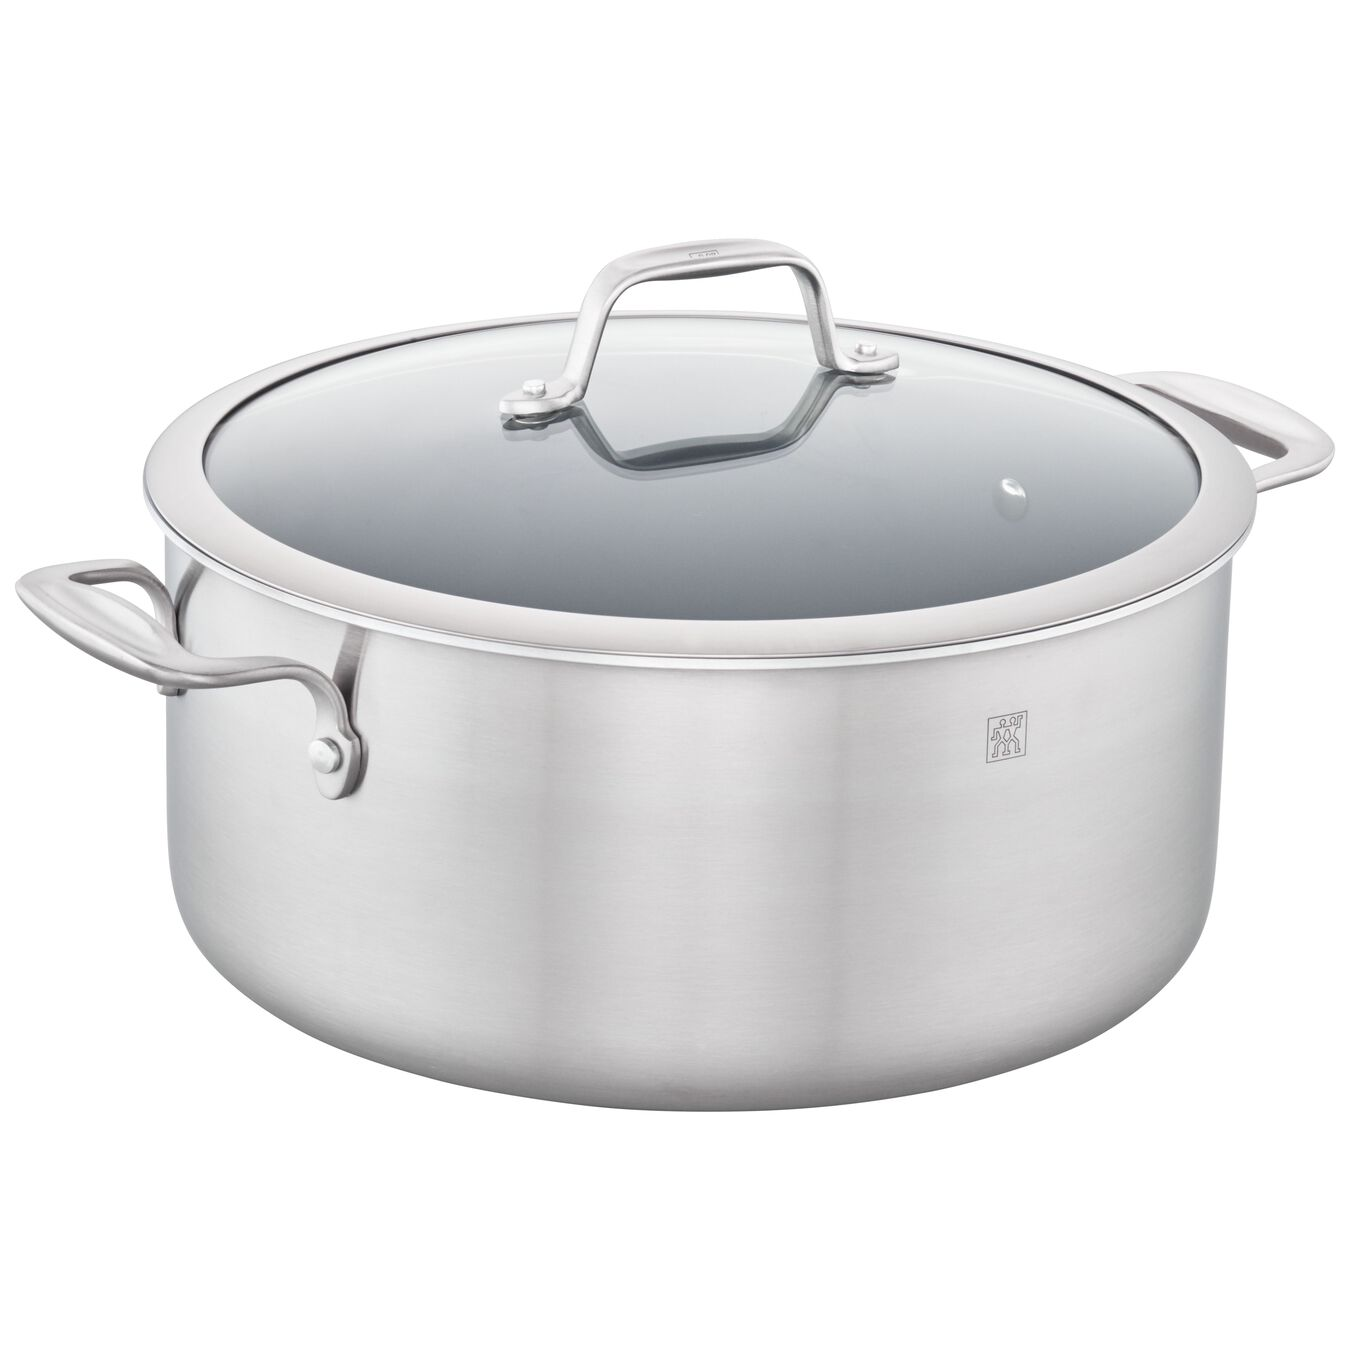 3-ply 8-qt Stainless Steel Ceramic Nonstick Stock Pot,,large 1